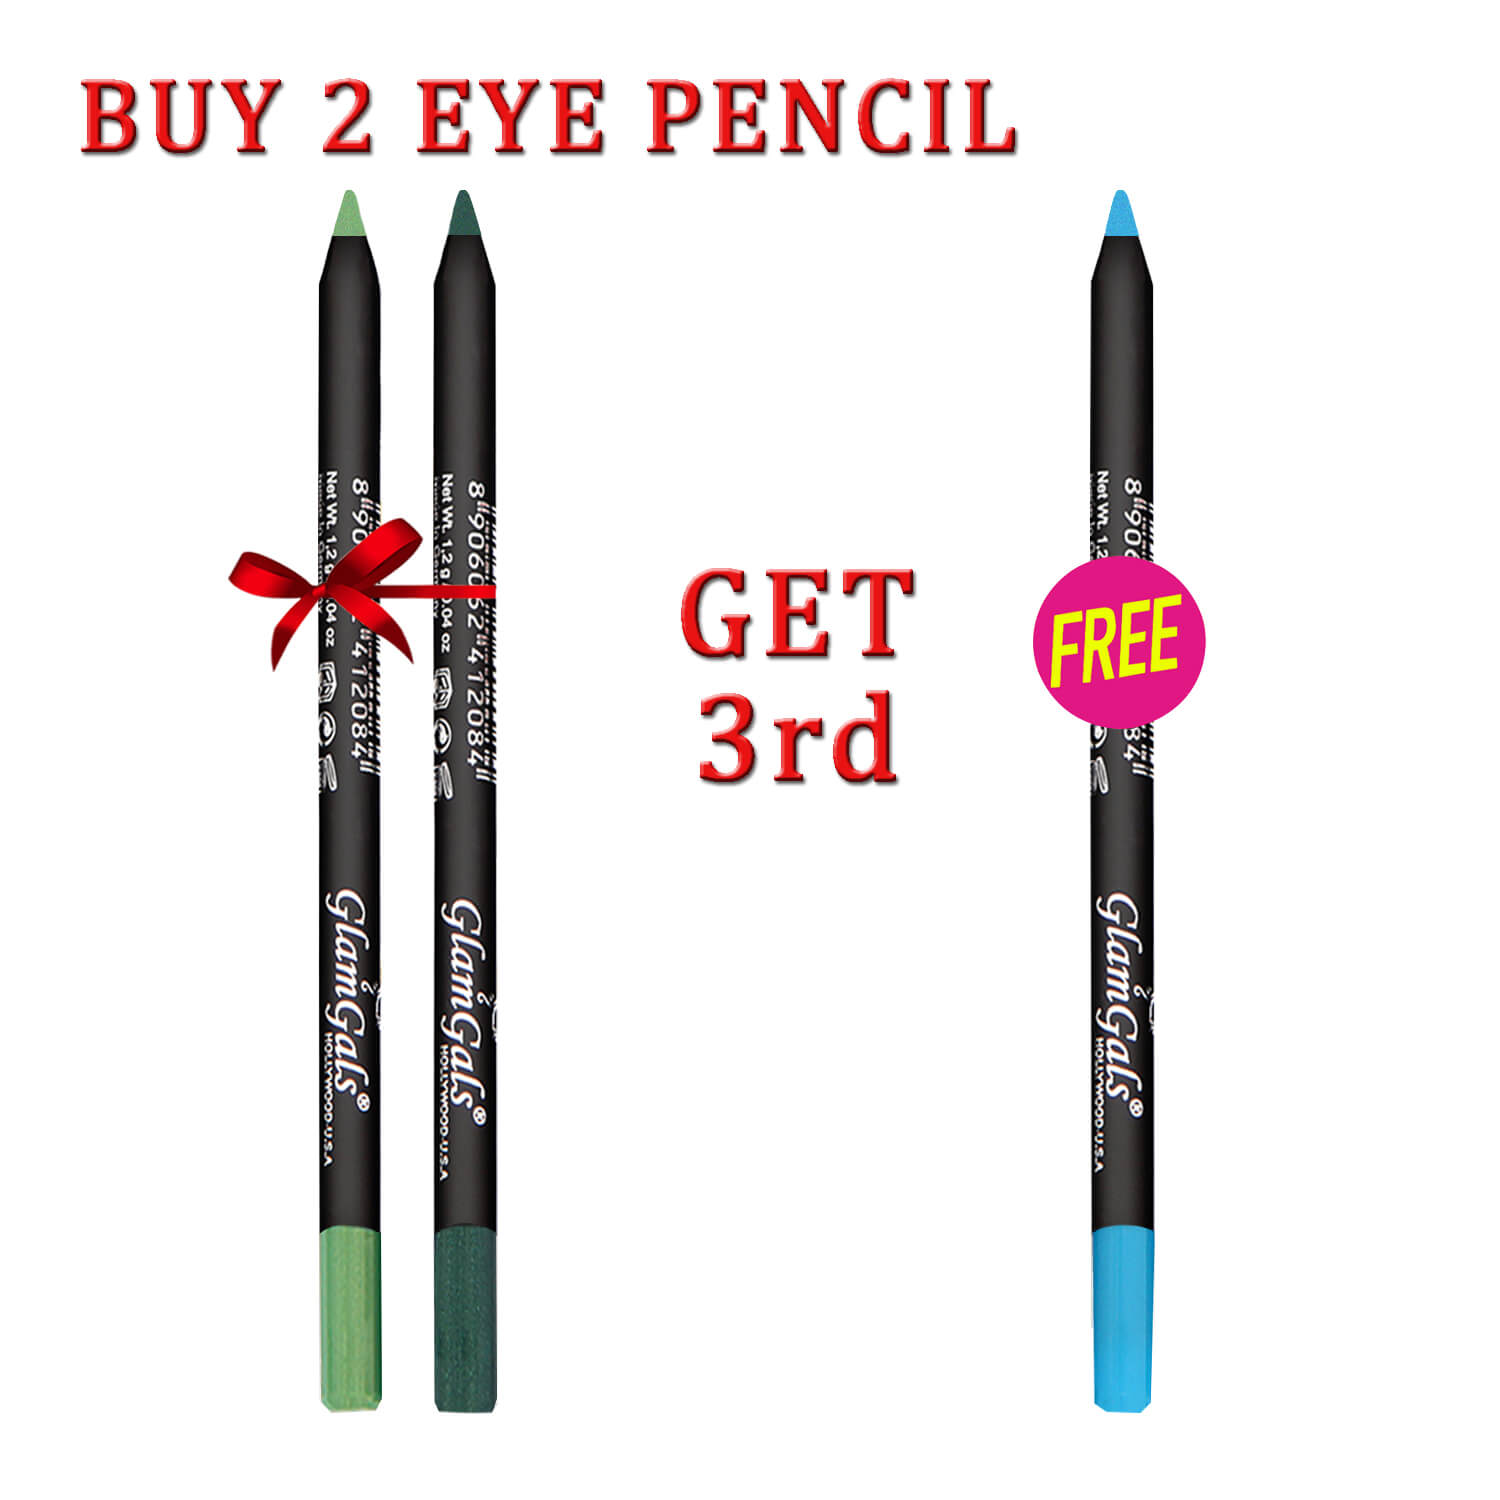 Buy 2 GlamGals Glide-on Eye pencil & Get 1 Free